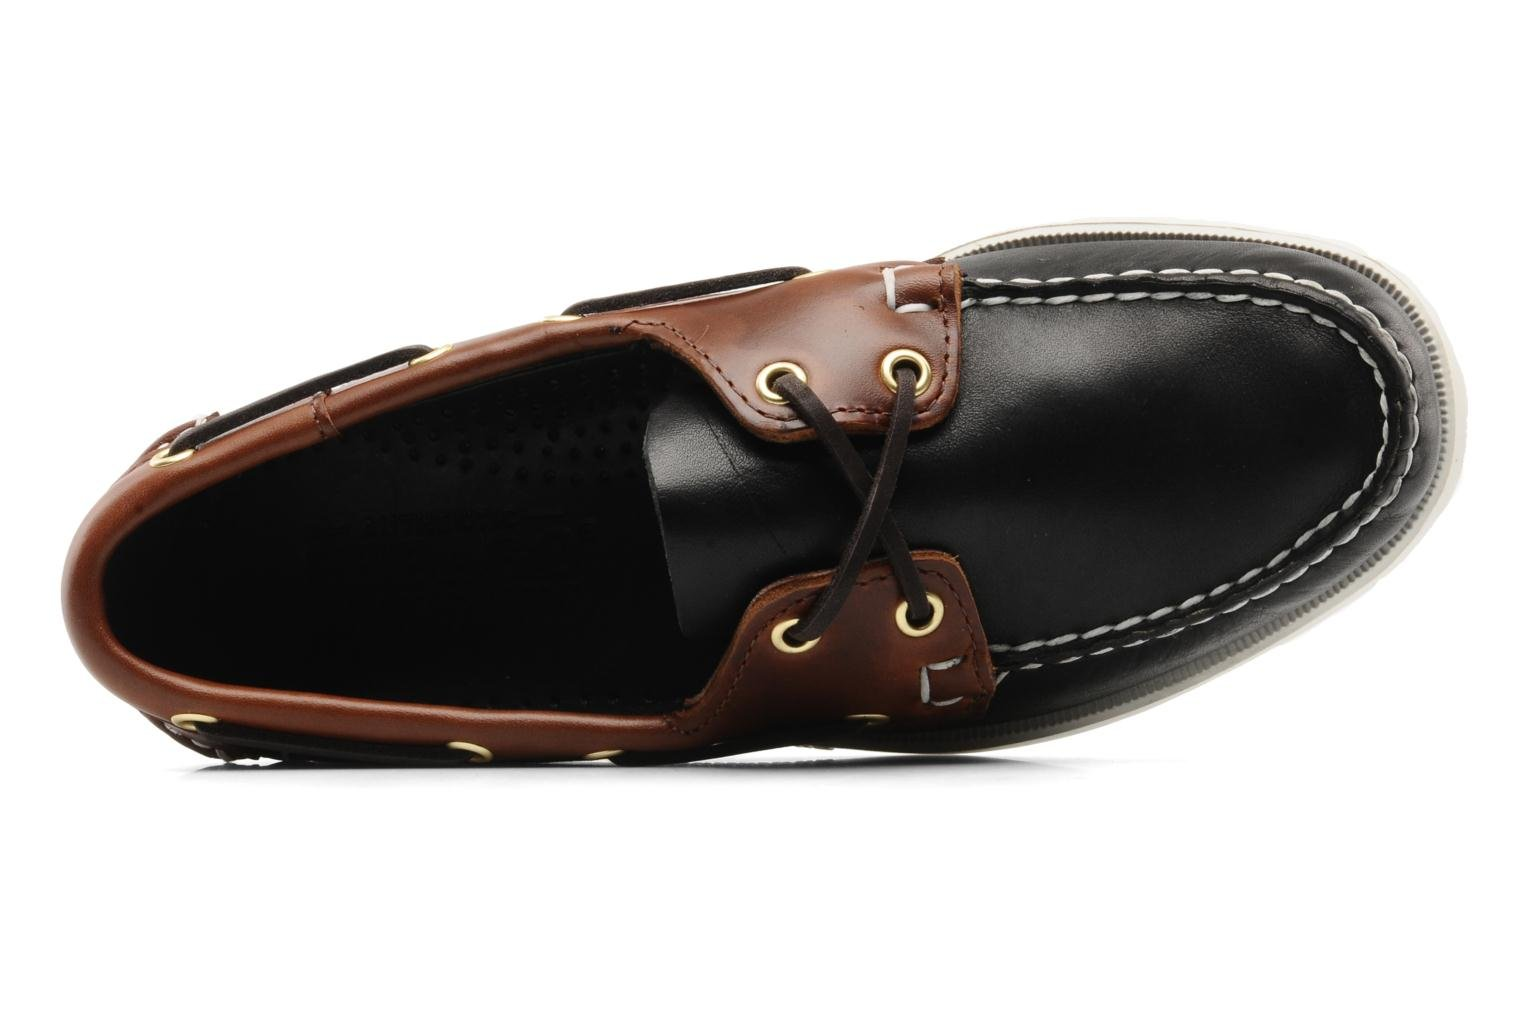 Spinnaker M Black brown leather